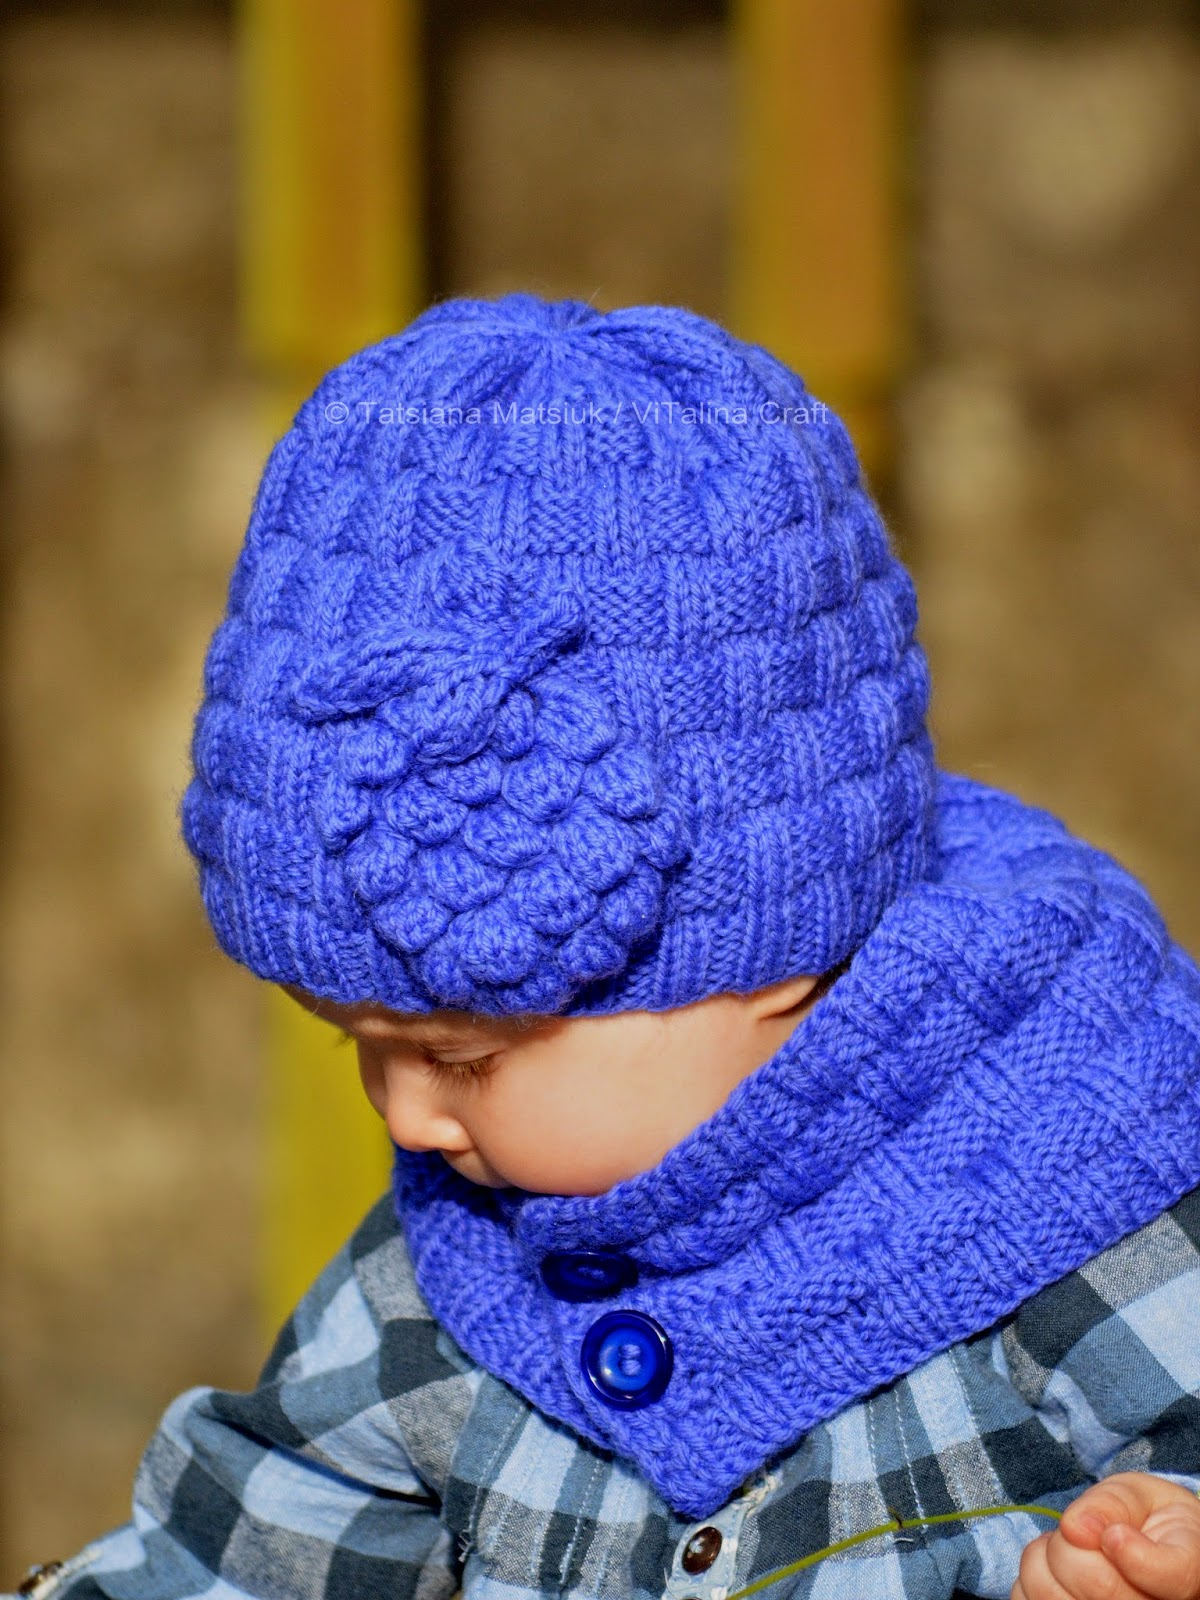 Free Knitting Pattern For Cushion Cover : Grapevine Hat and Scarf Knitting Pattern ViTalina Craft